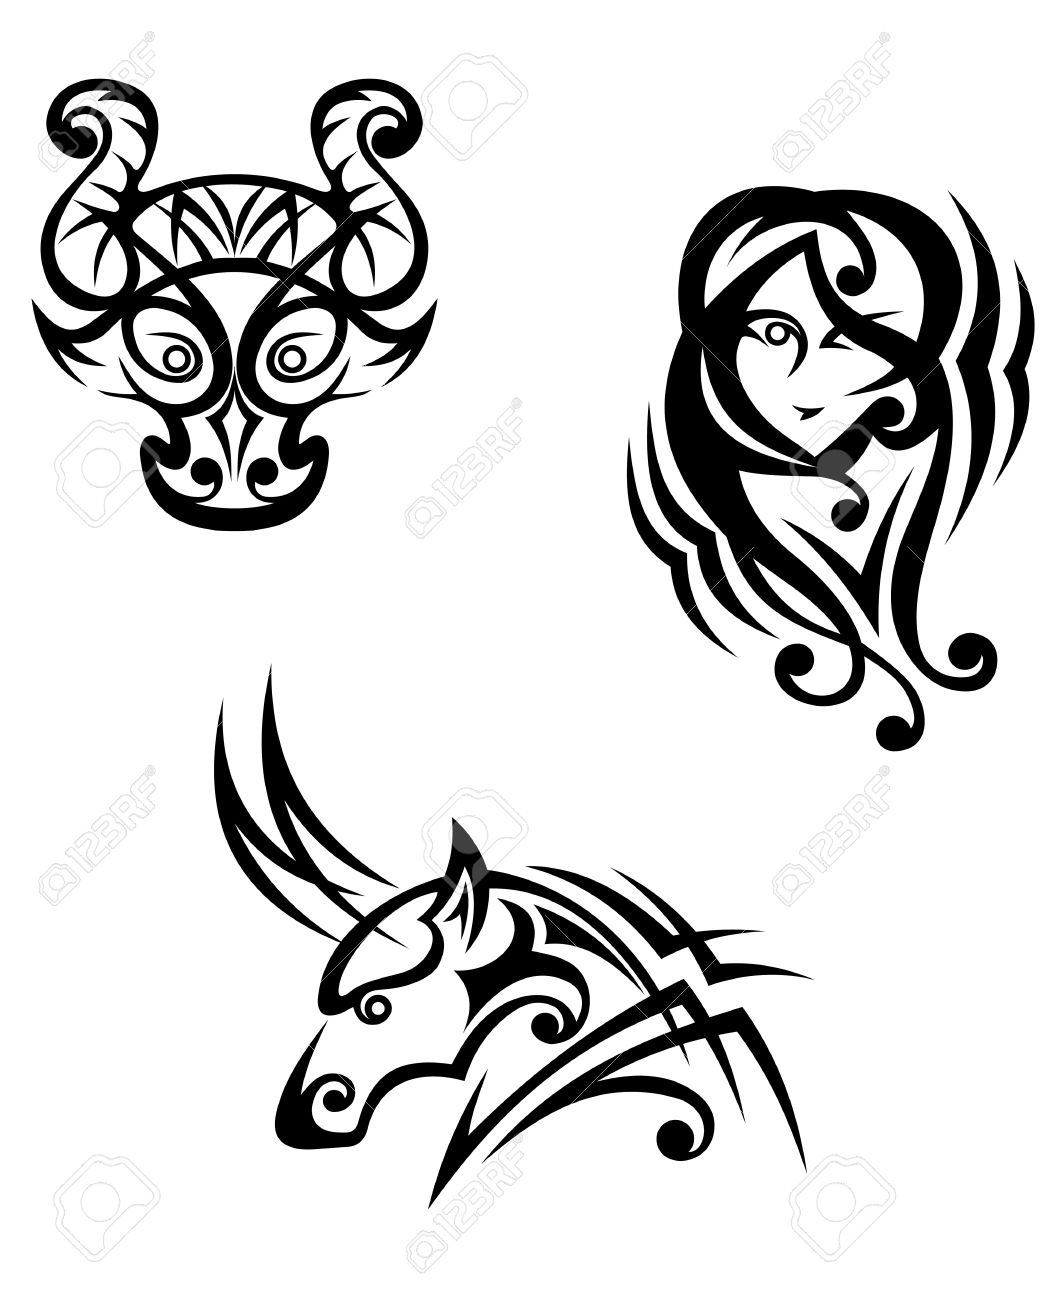 Taurus virgo and capricorn zodiacal symbols in tribal style taurus virgo and capricorn zodiacal symbols in tribal style stock vector 22472822 buycottarizona